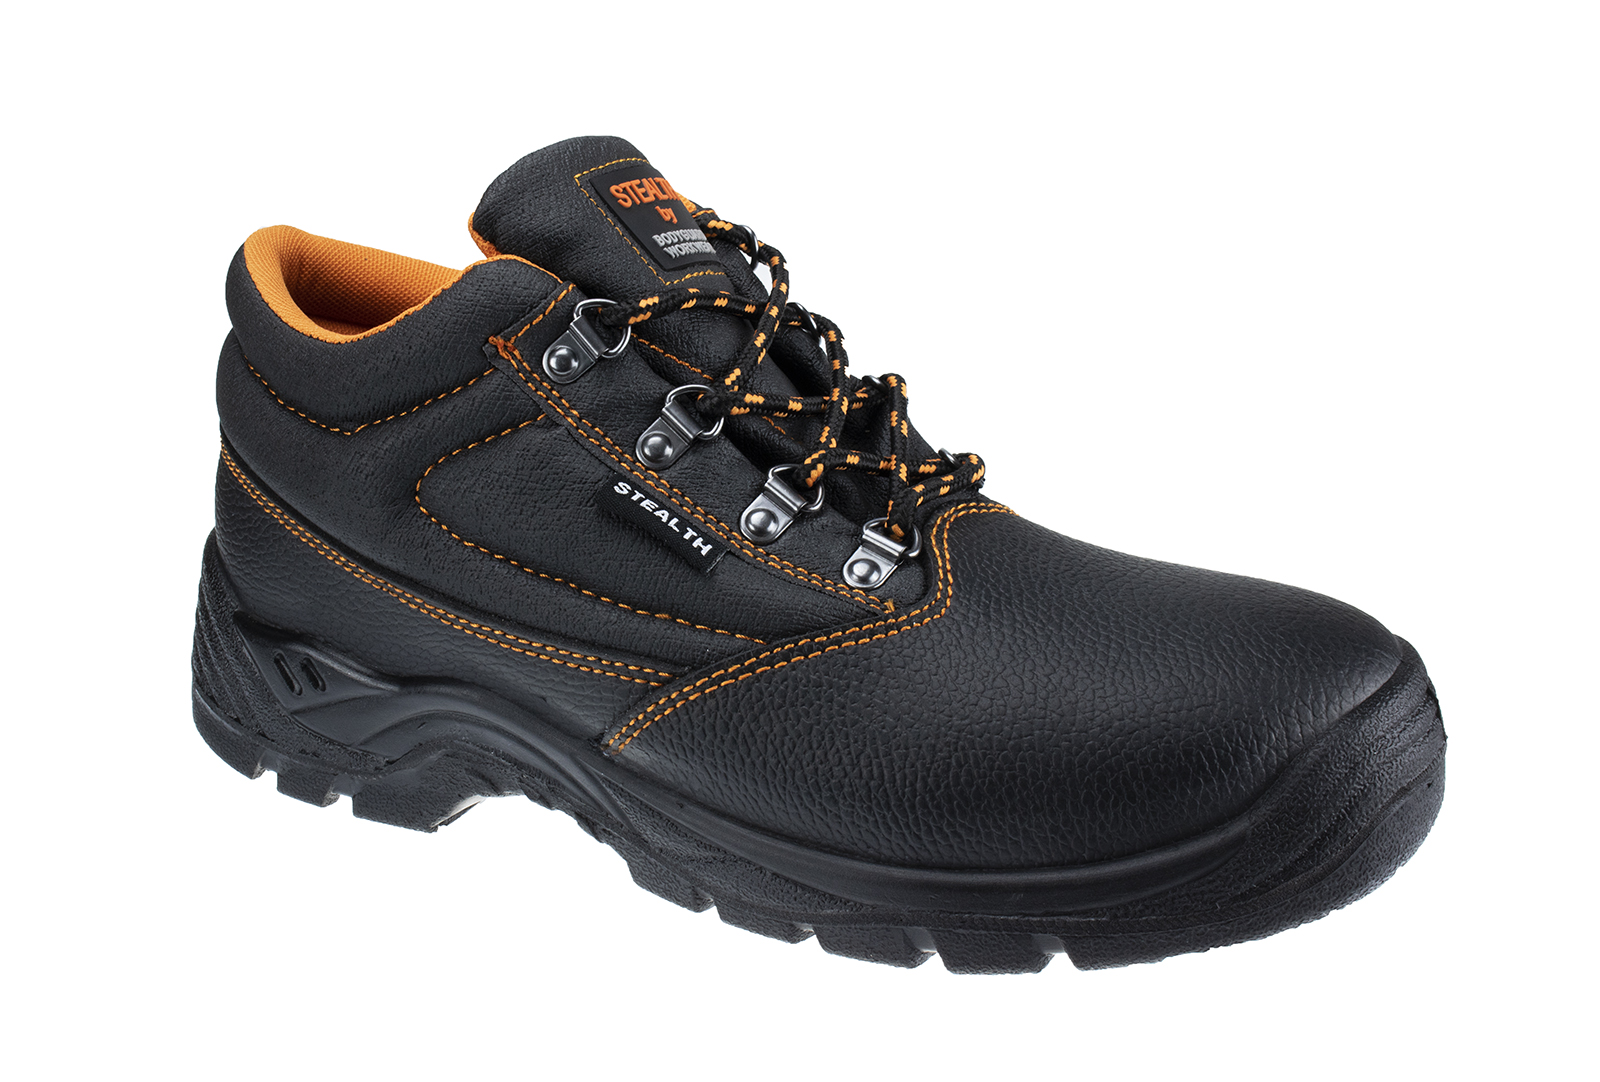 Bodyguard Stealth Leather Safety Boot